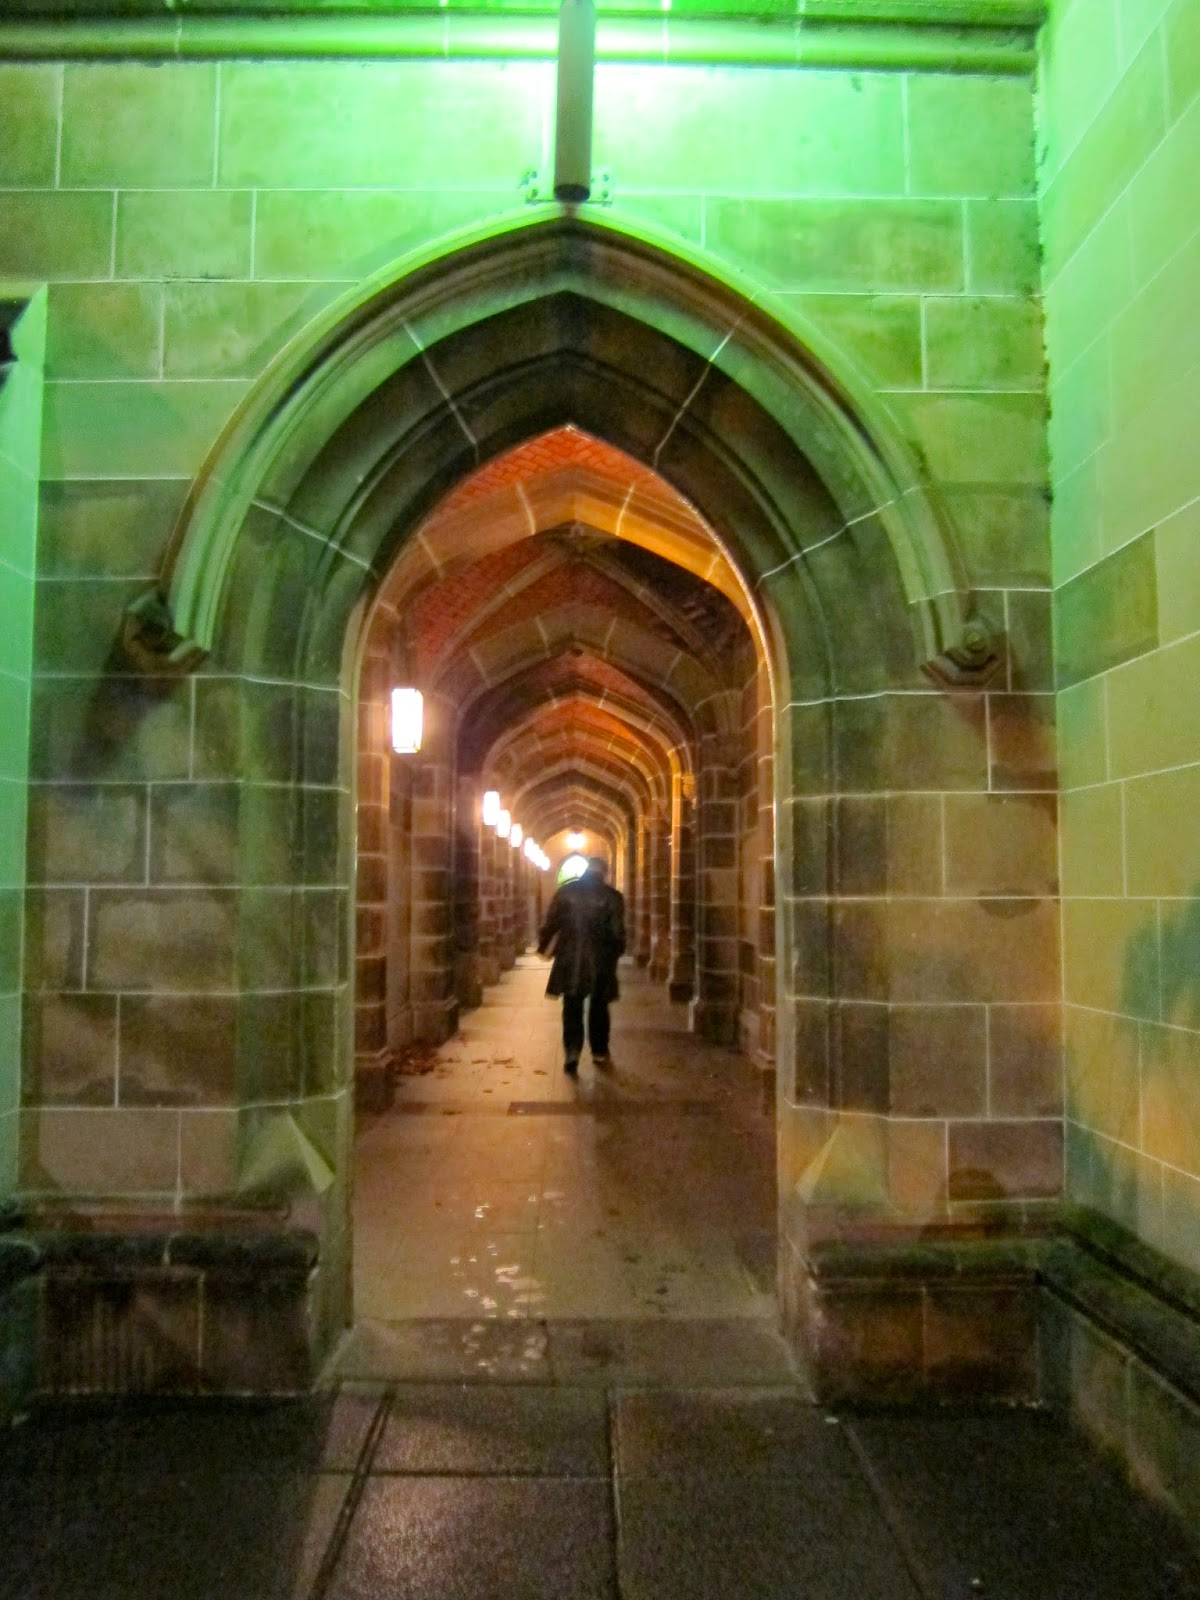 Melbourne university arch green harry potter hogwarts